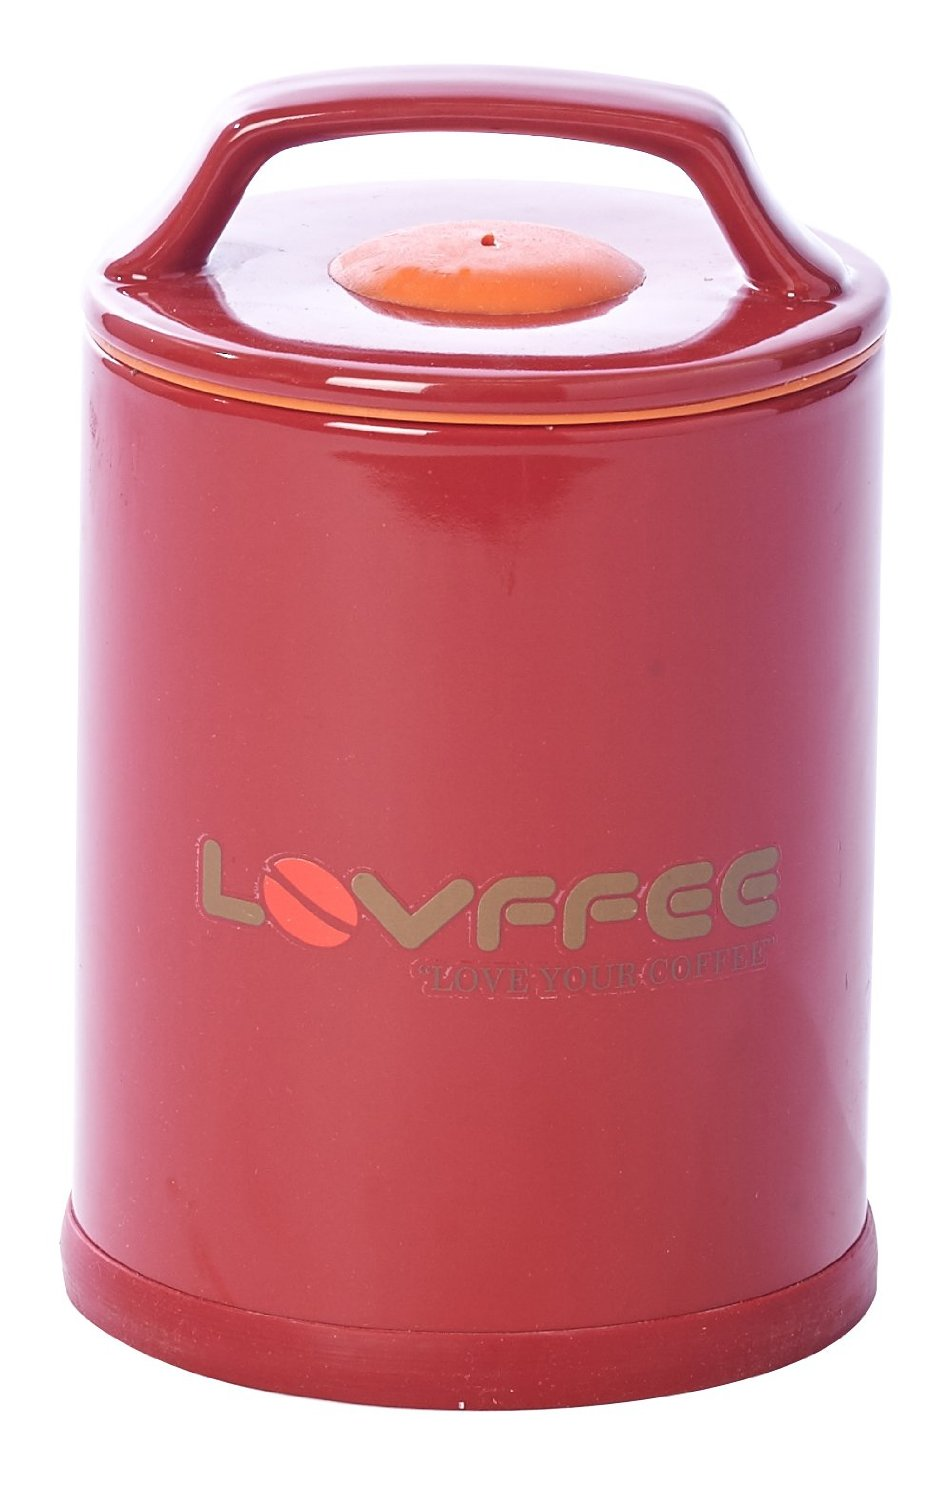 Lovffee Red Ceramic Premium Coffee Canister With Scoop Holds 1 Pound Whole